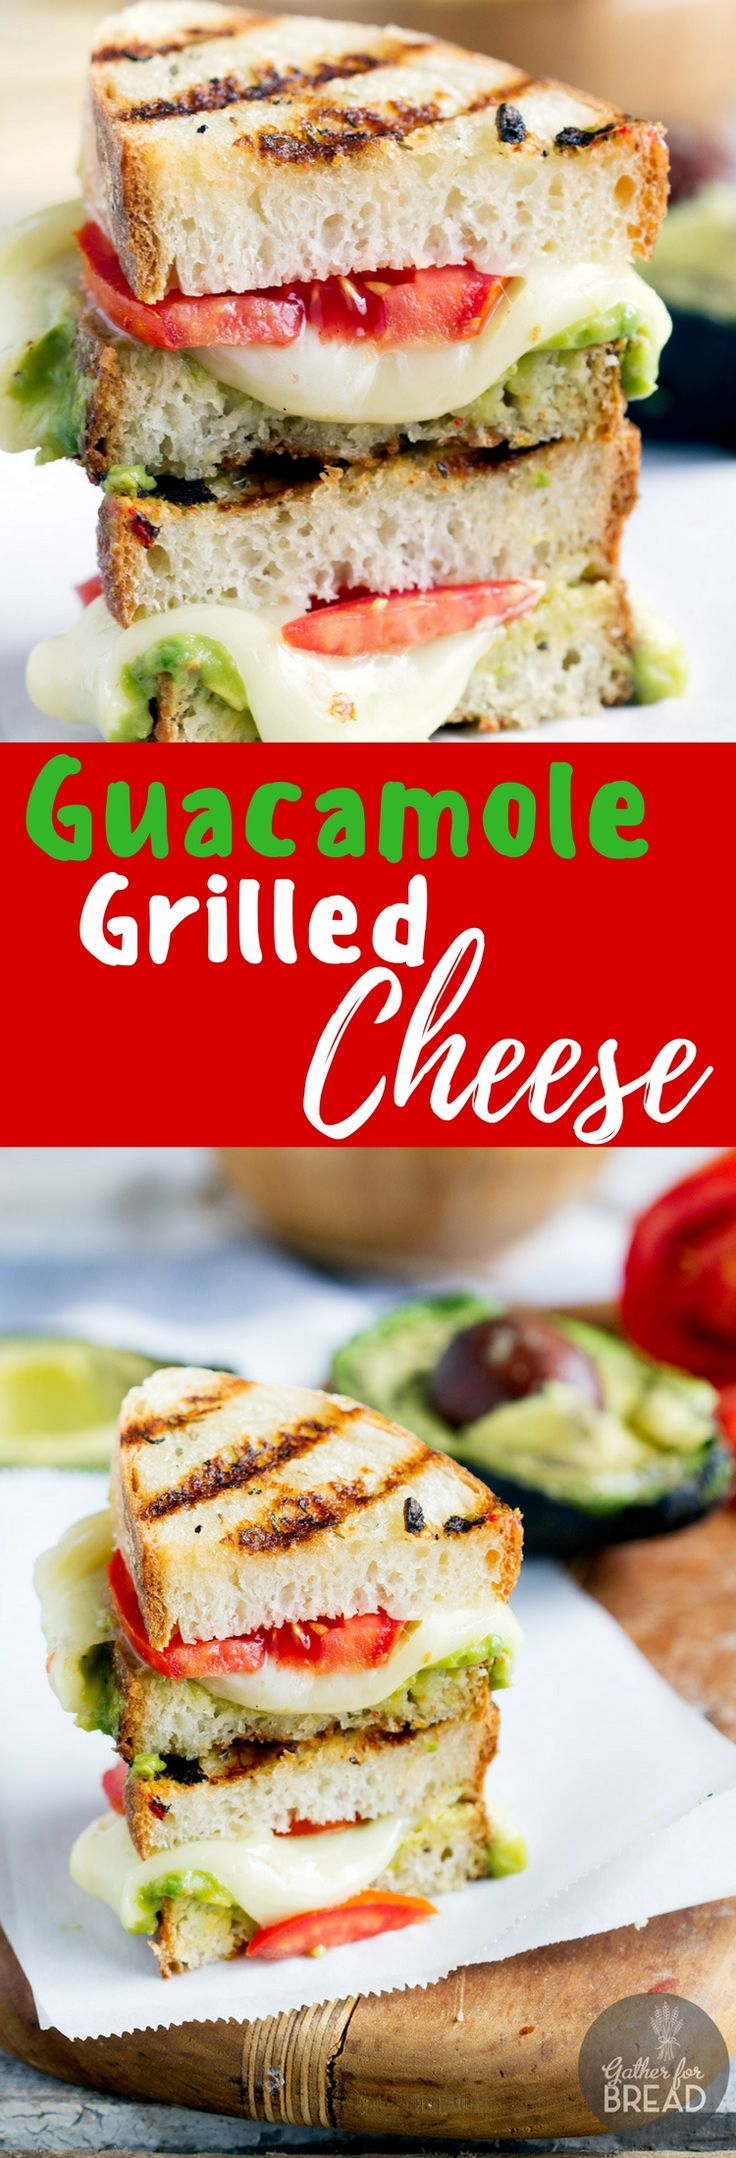 Guacamole Grilled Cheese - Grilled cheese sandwich bursting with gooey cheese…